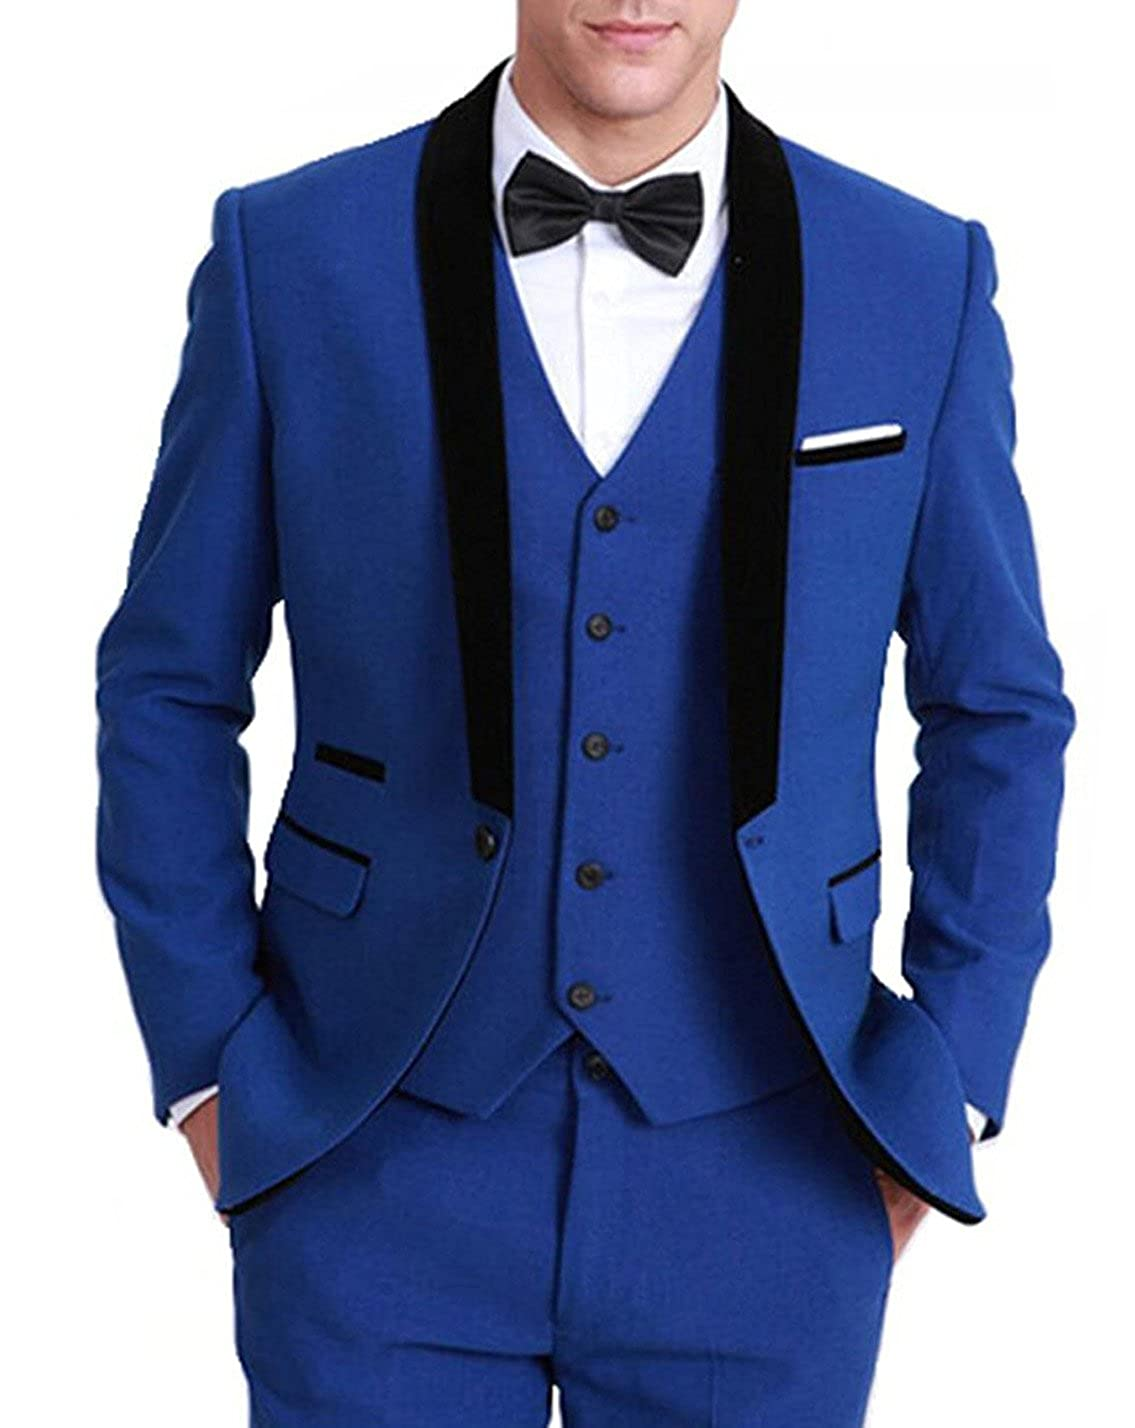 Fitty Lell Mens Suit Tuxedo Latest Three Pieces Groom Formal Suits Men Clothing